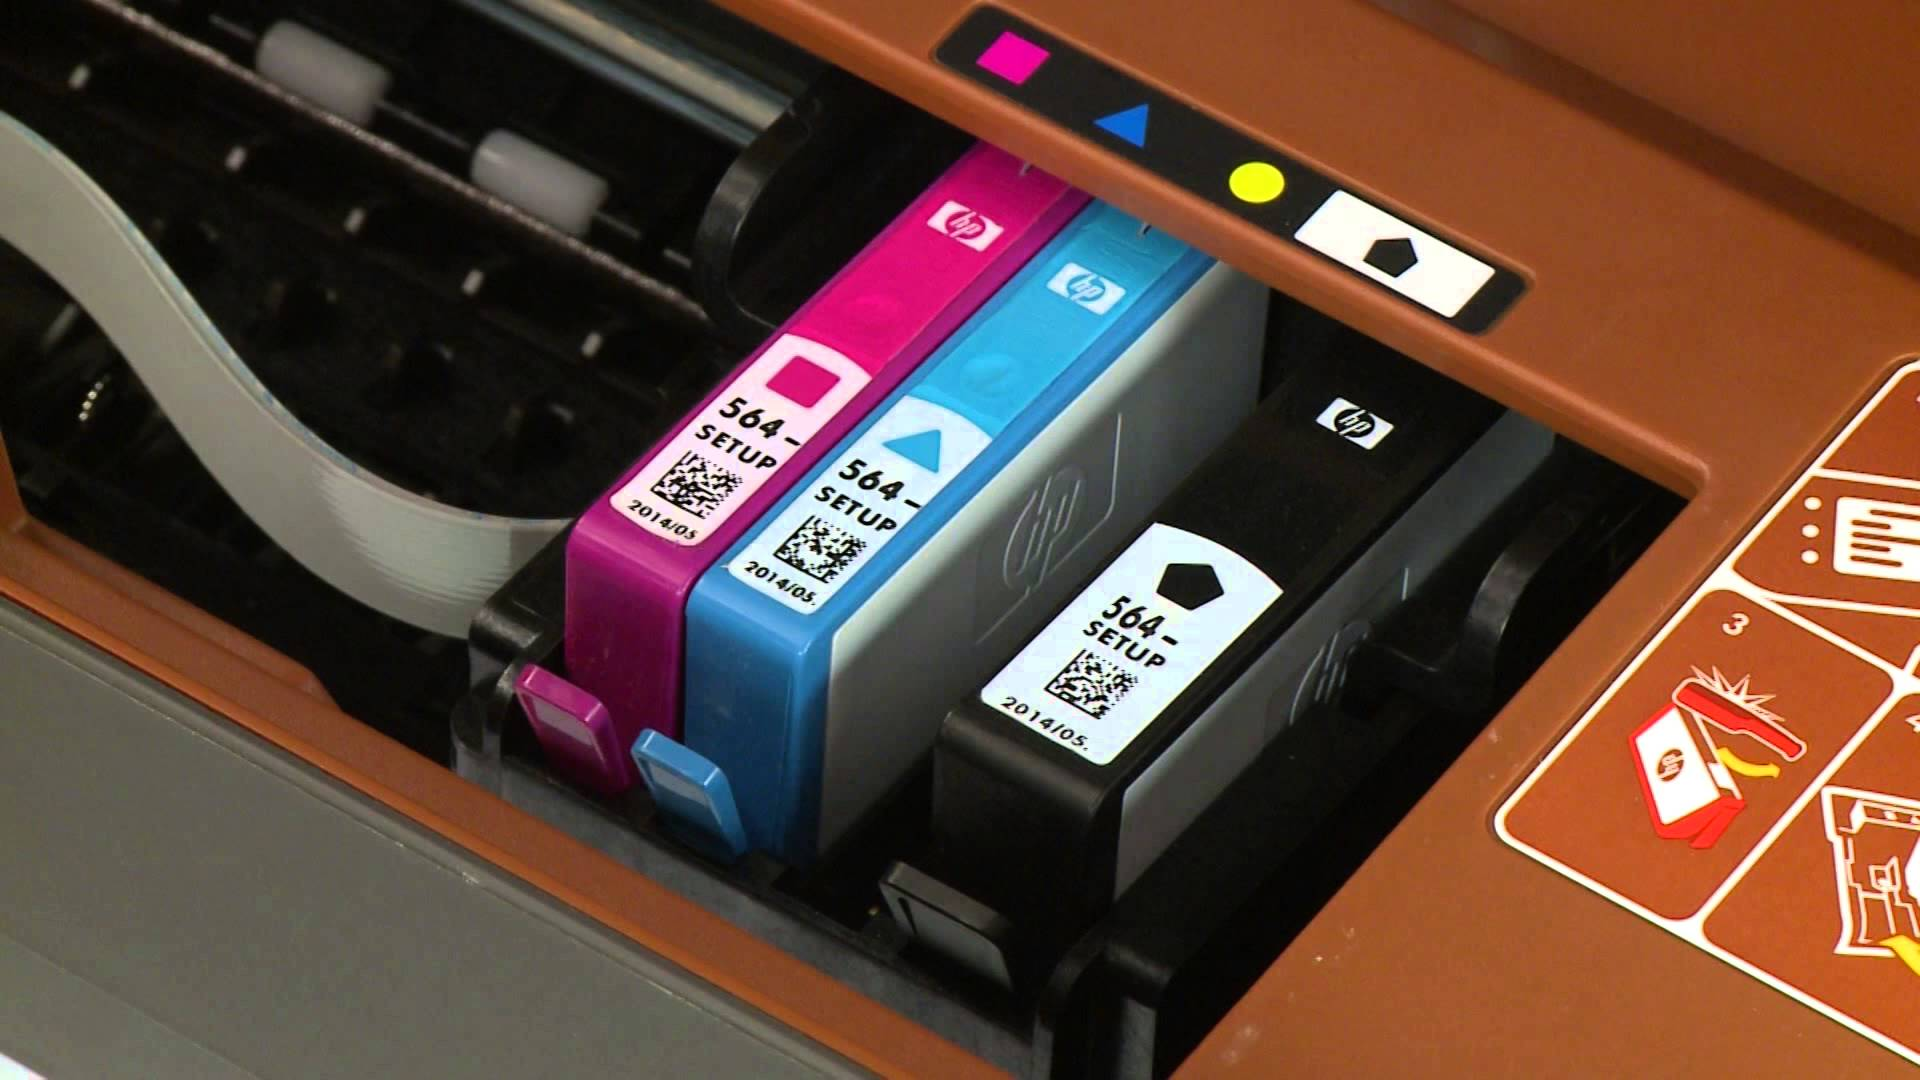 Points To Consider While Choosing The Type Of Print Required